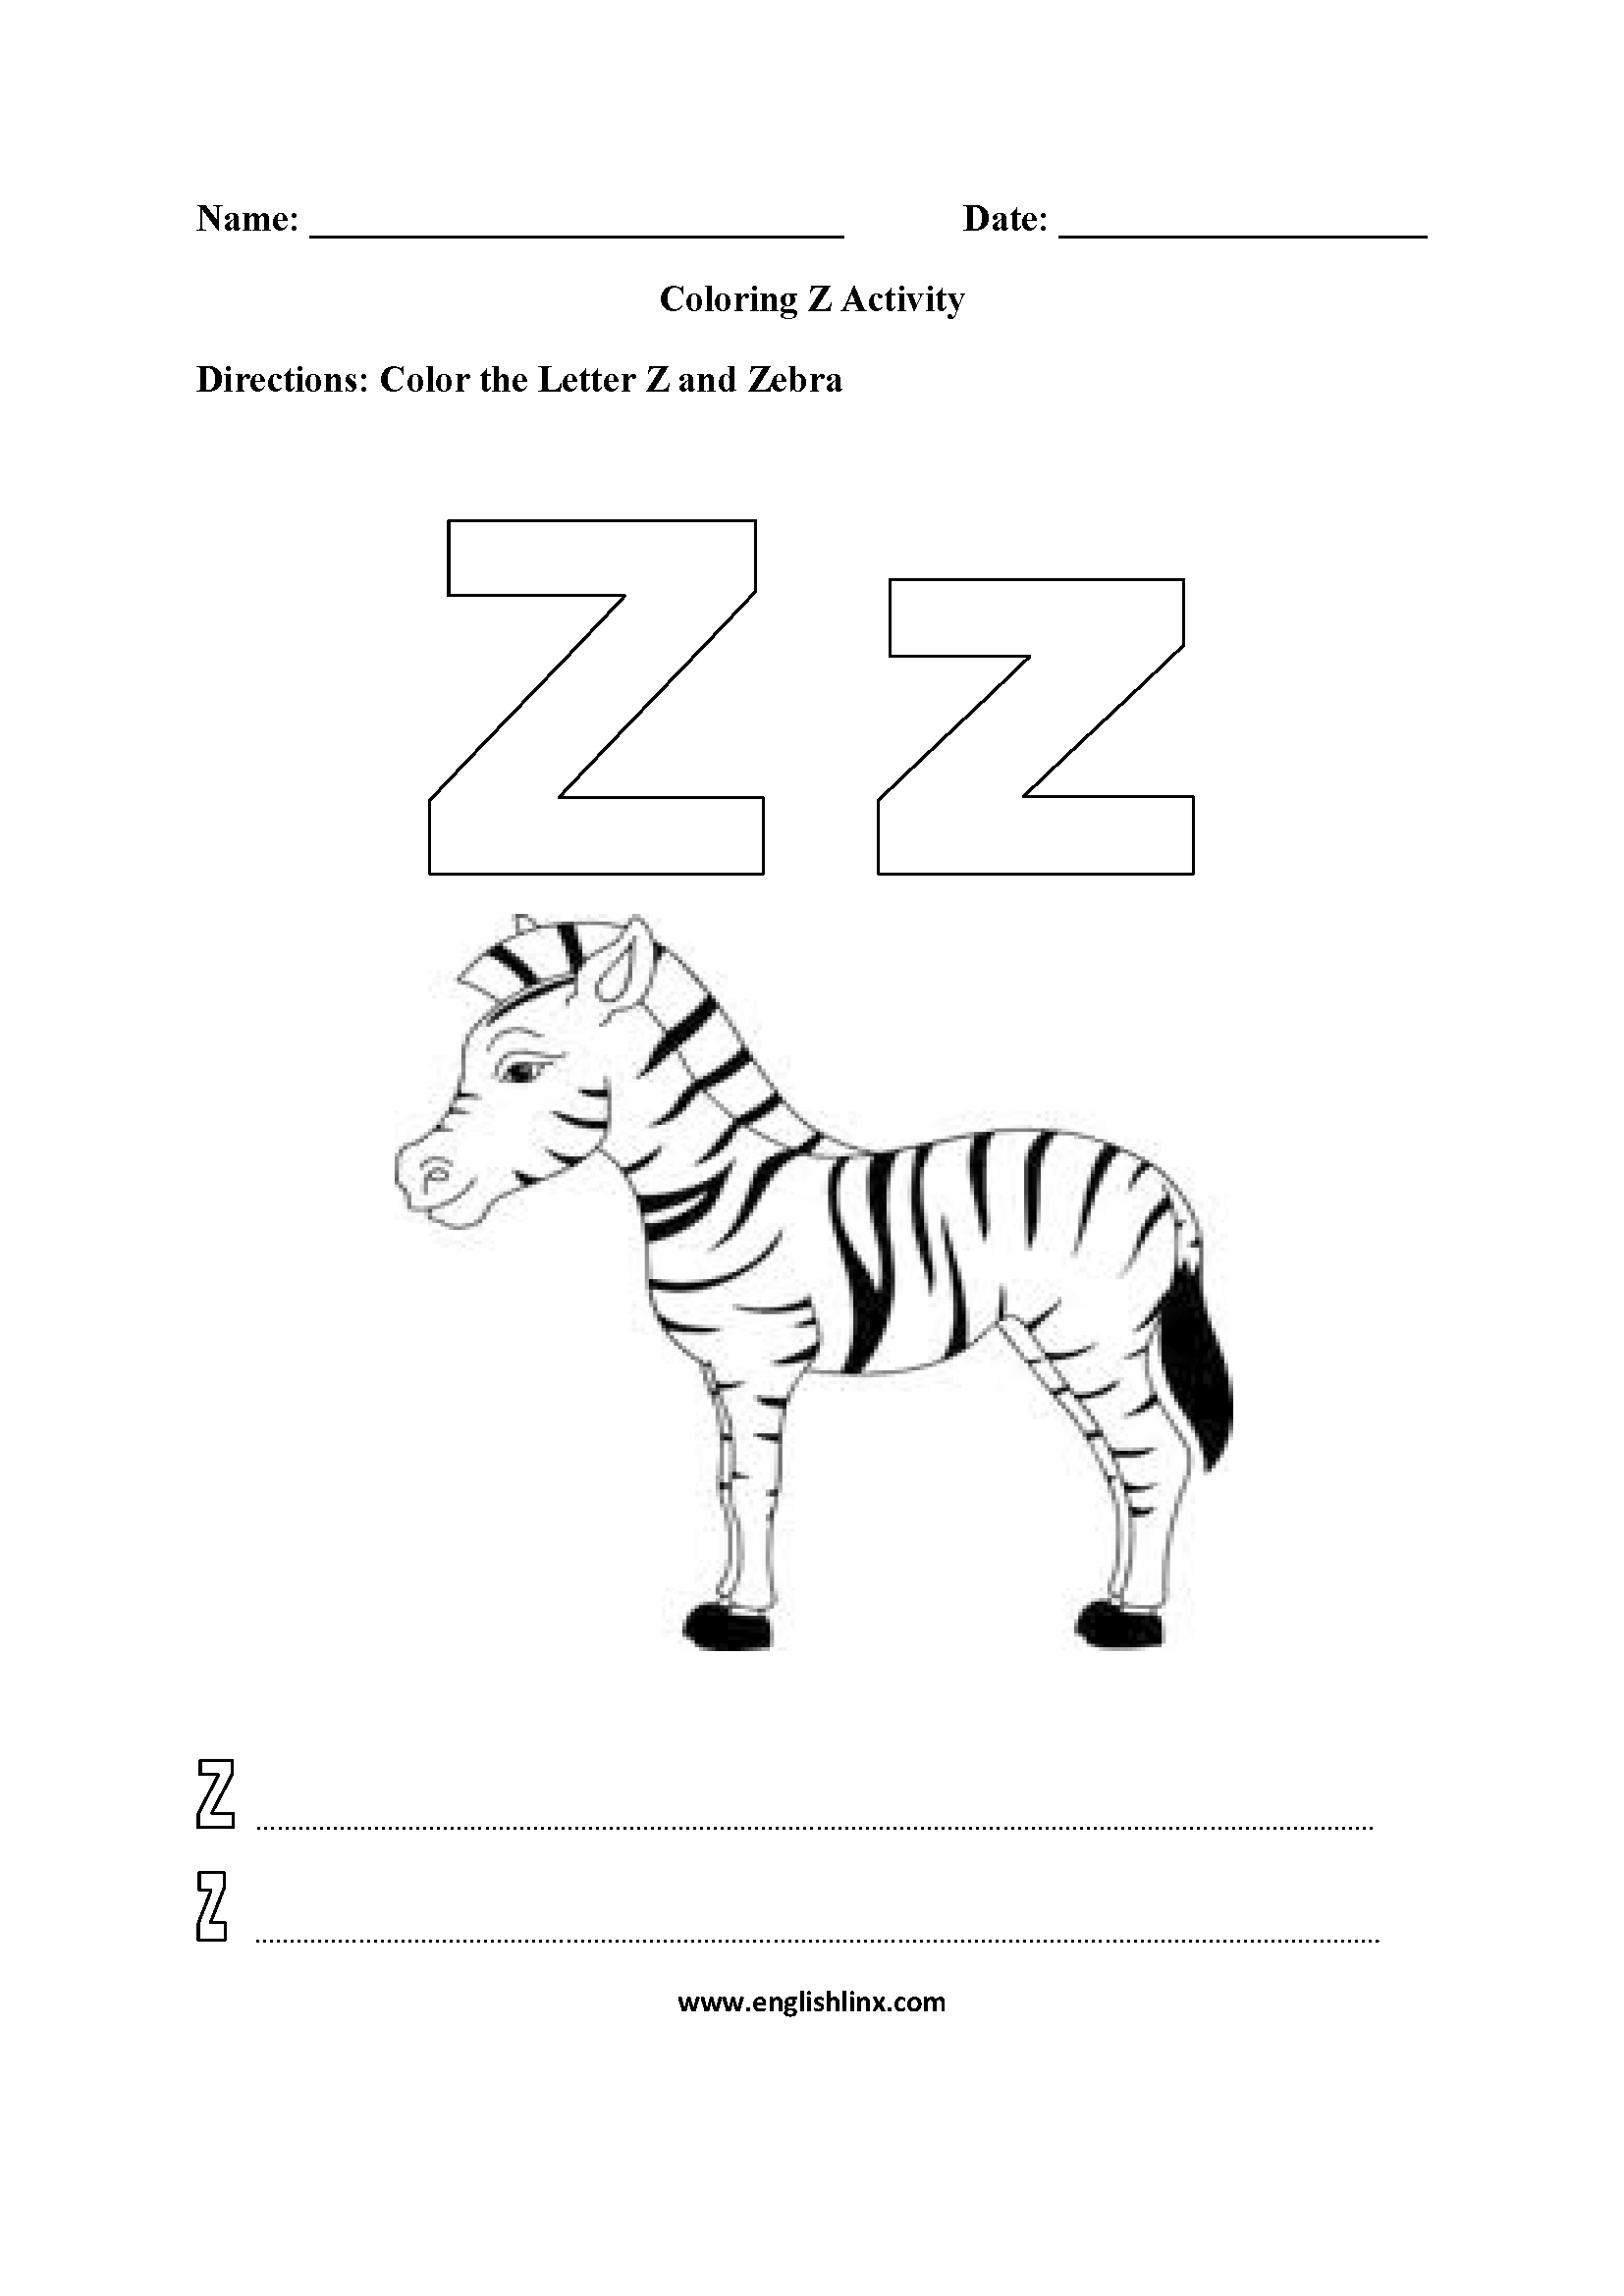 Coloring Z Worksheet